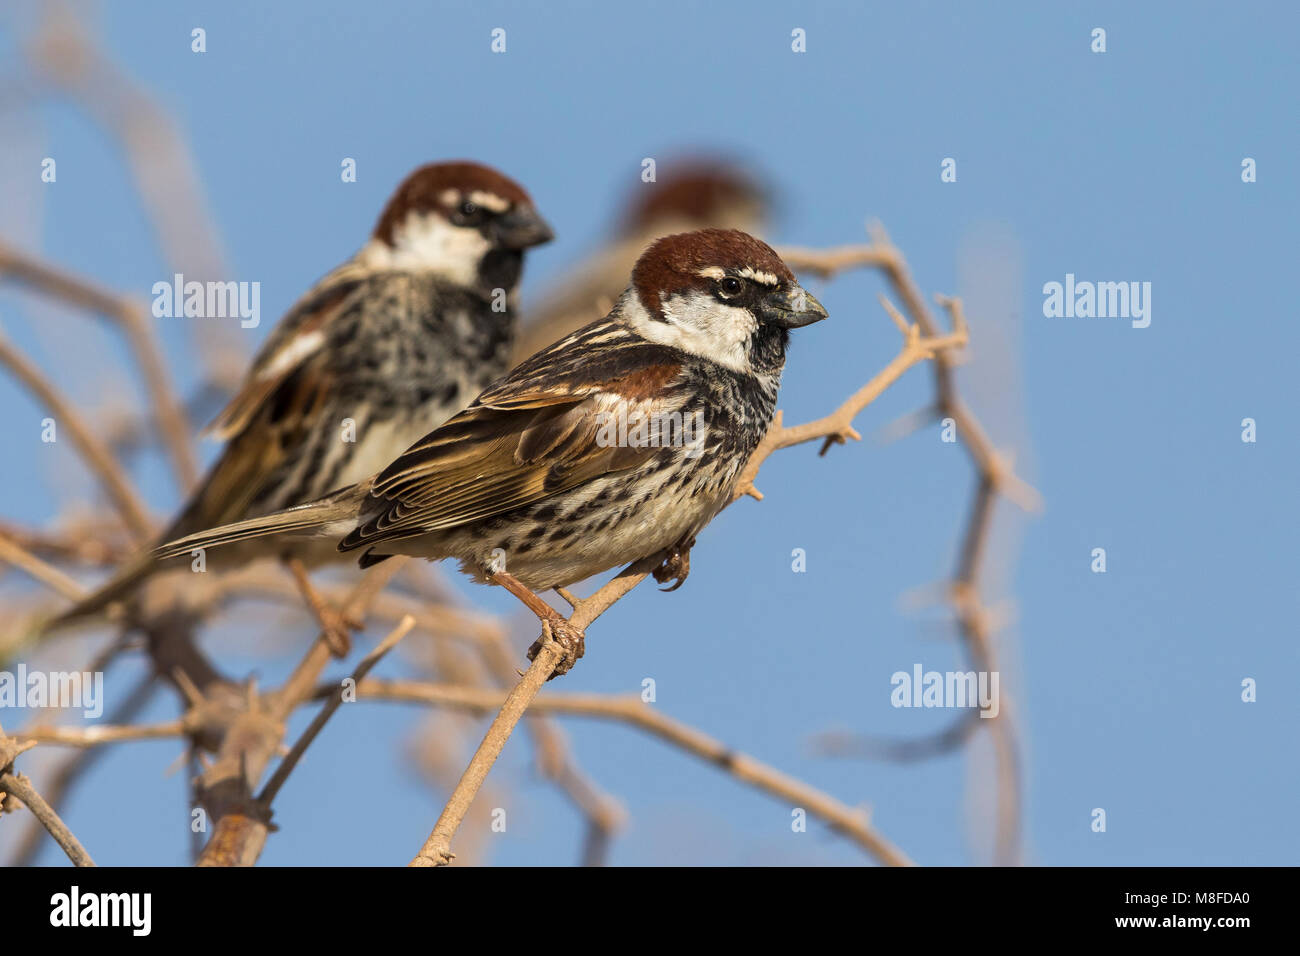 Mannetje Spaanse Mus; Spanish Sparrow male - Stock Image